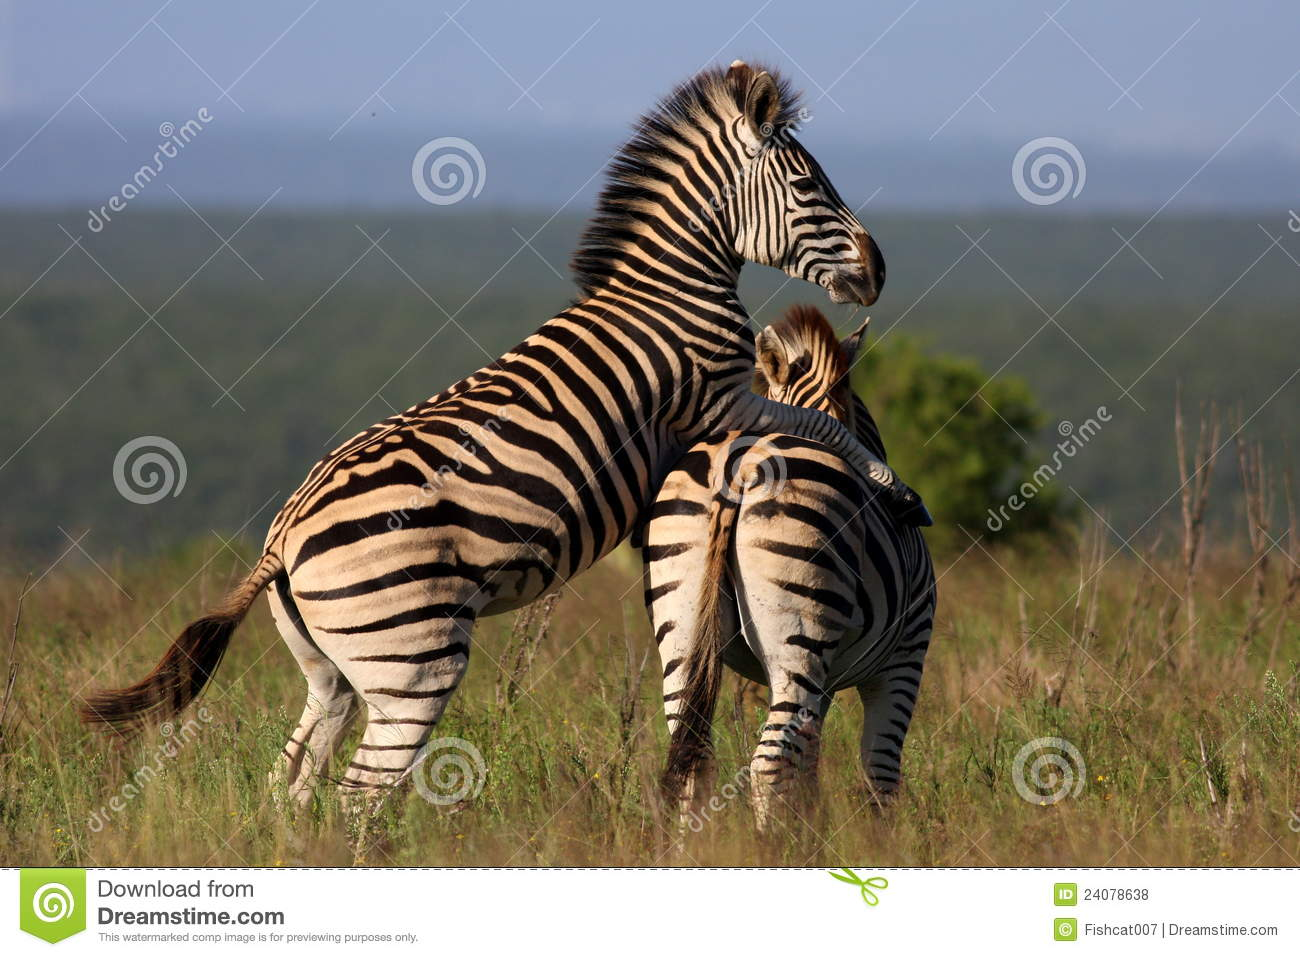 Zebra mating stock photo. Image of close, african, africa ...